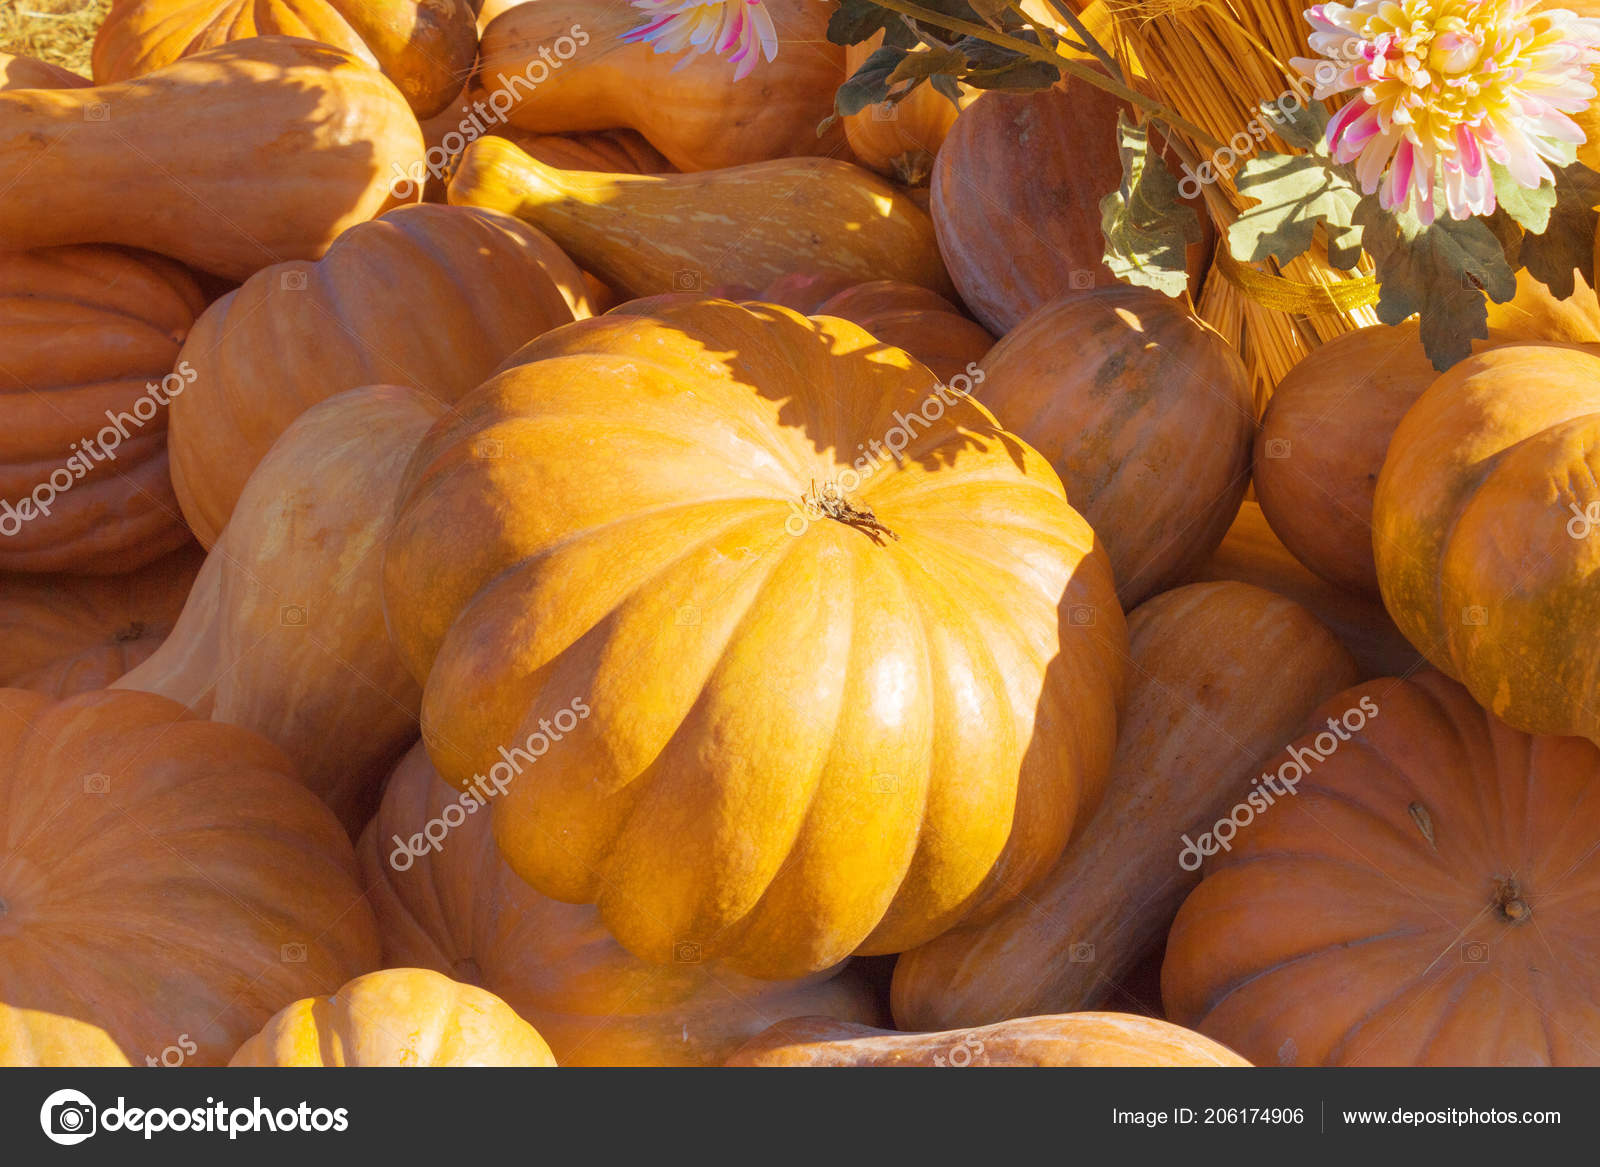 big and small pumpkins stock photo smartape 206174906